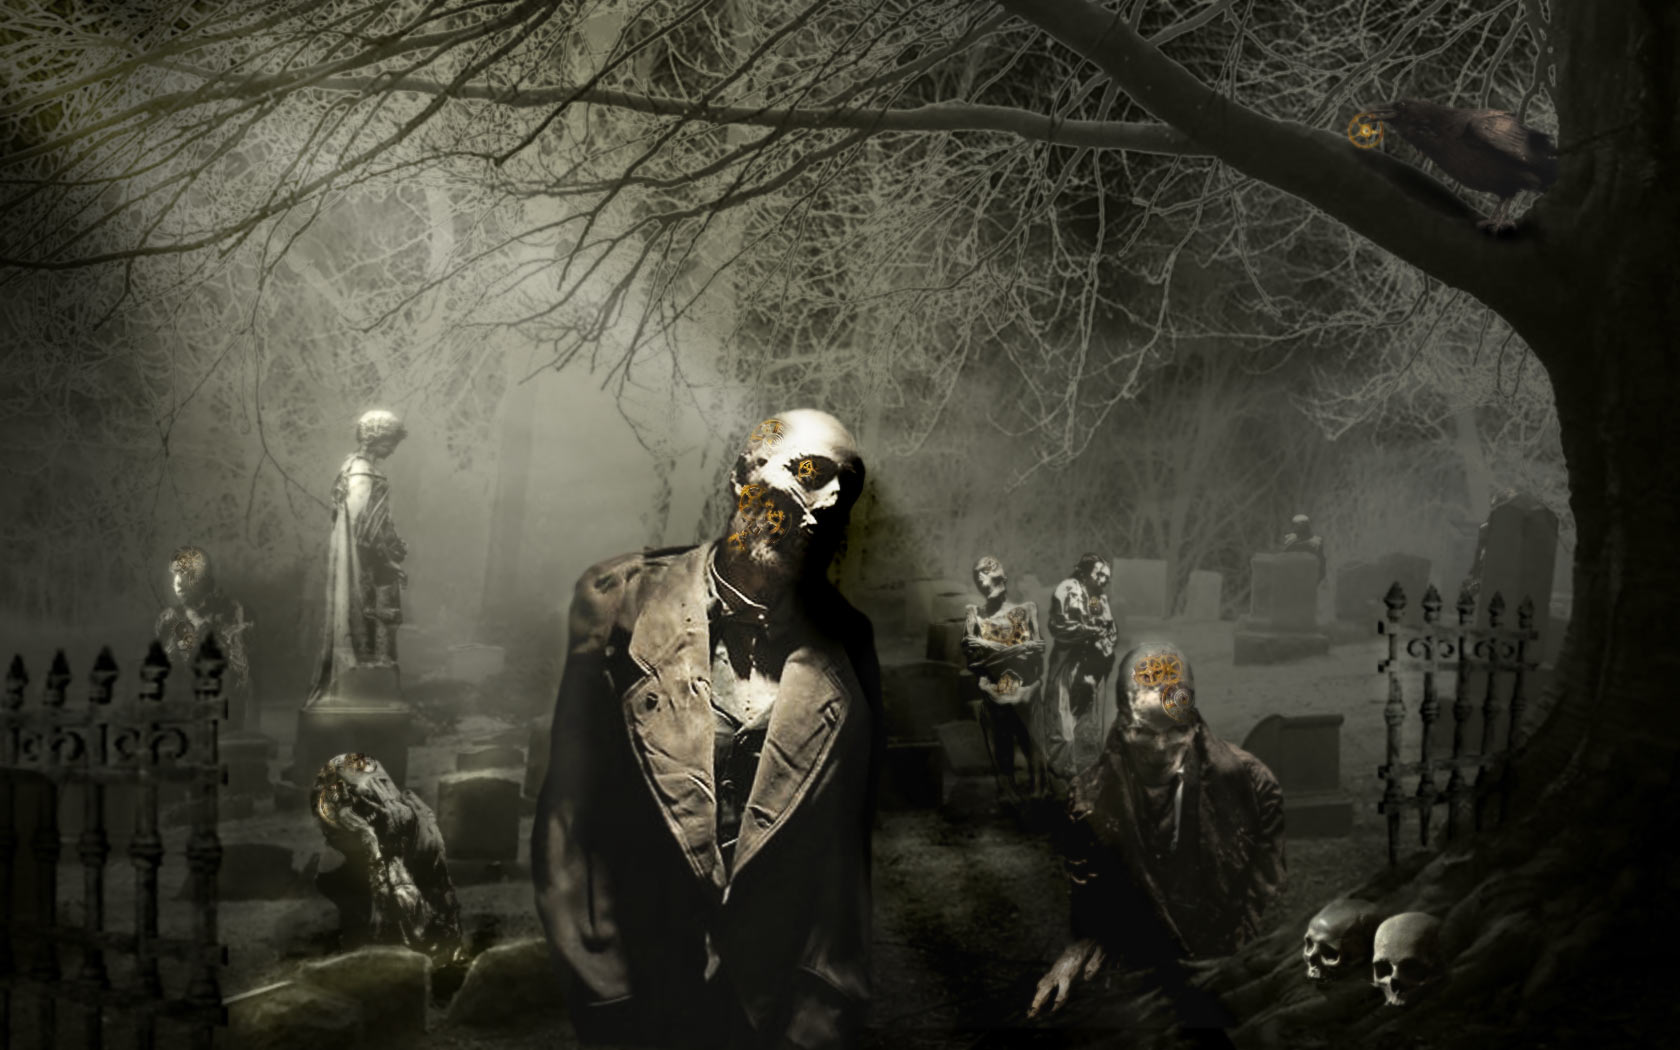 Download Wallpaper Dark Zombie With Tags Dark Windows Vista